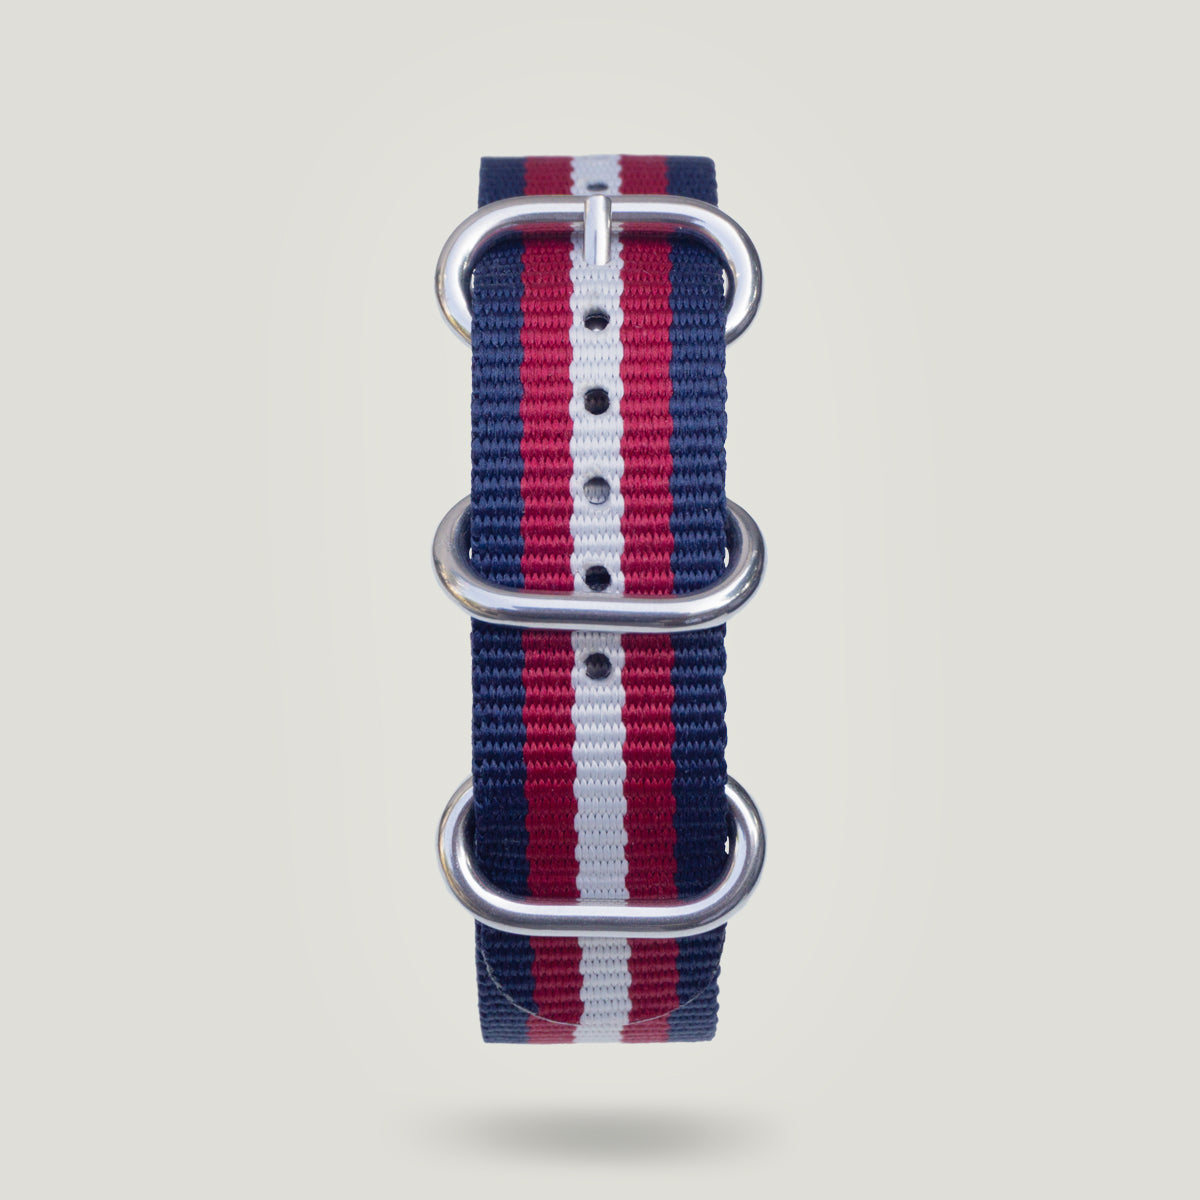 Nylon Strap in Blue/Red/White - 20mm